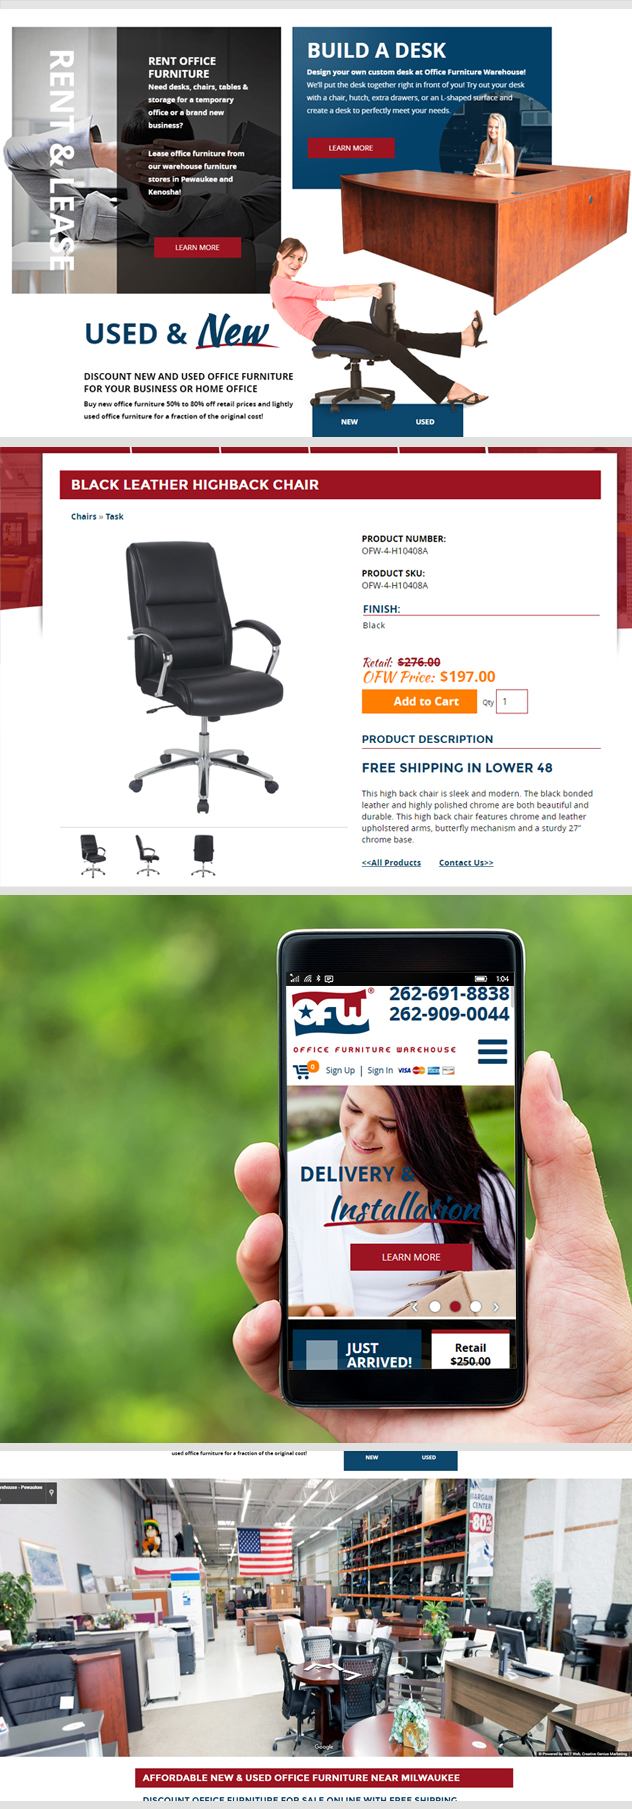 Milwaukee web marketing for Office Furniture Warehouse